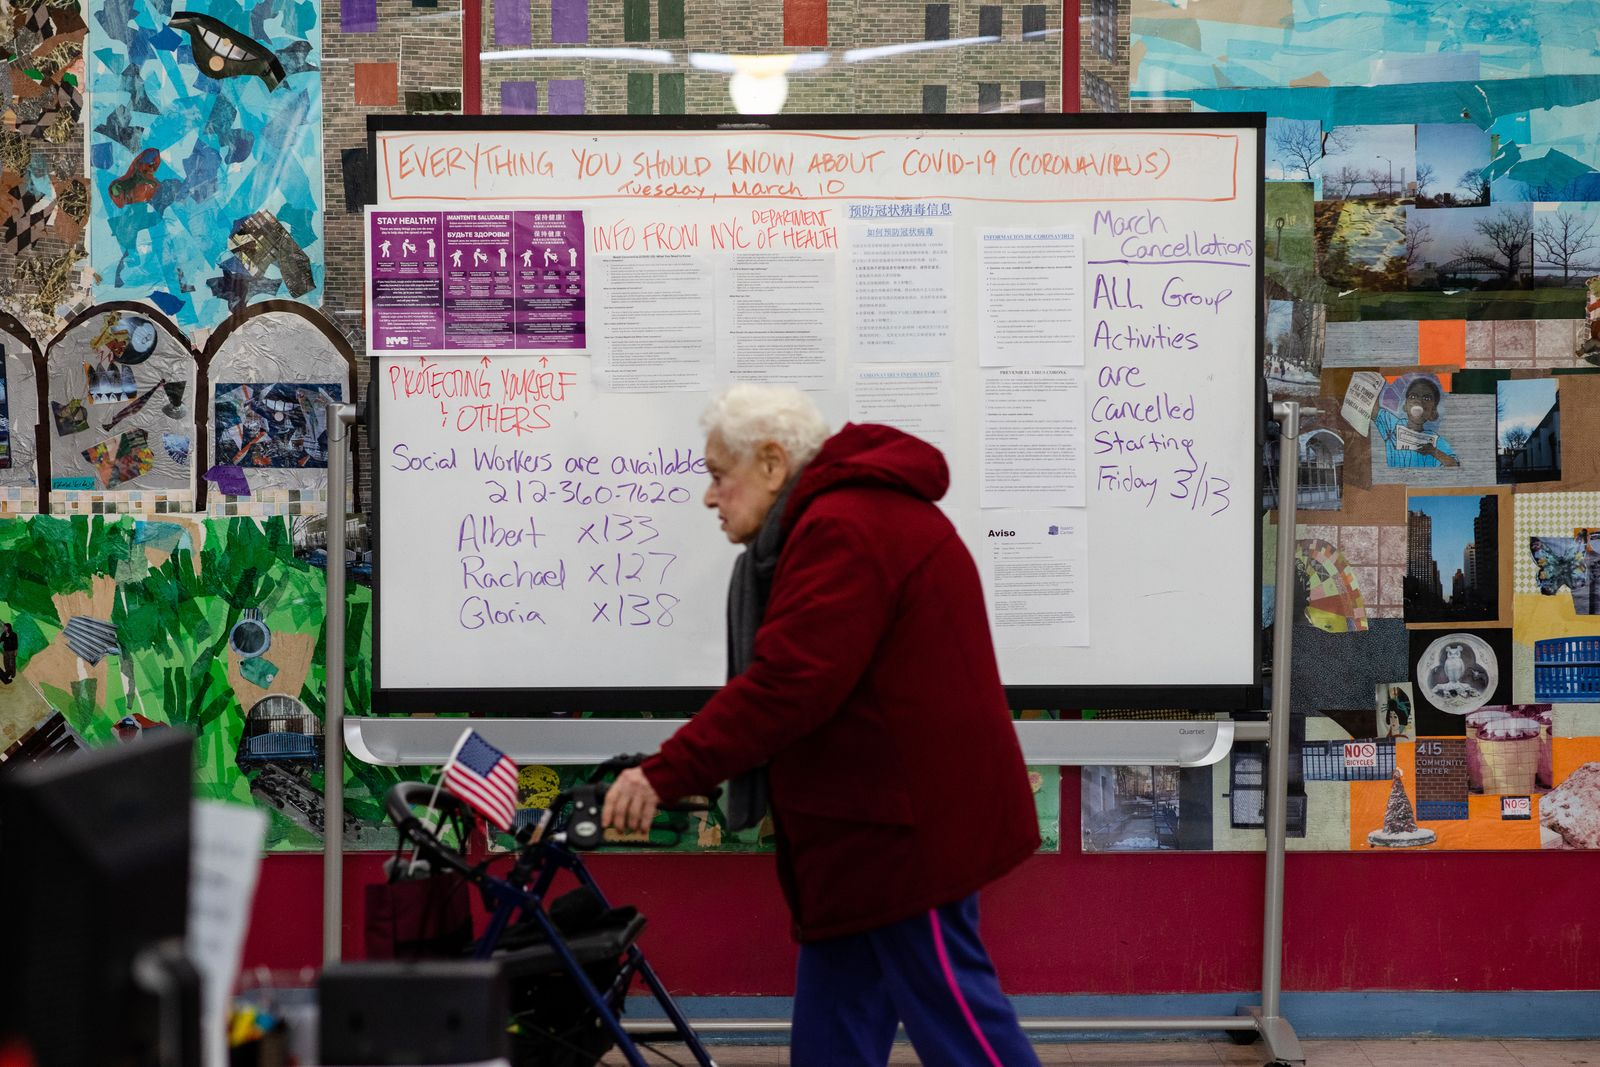 A person walks through the Stanley Isaacs Center past a board with information about the coronavirus, in Manhattan, Tuesday, March 17, 2020. (Stephen Speranza/The New York Times)